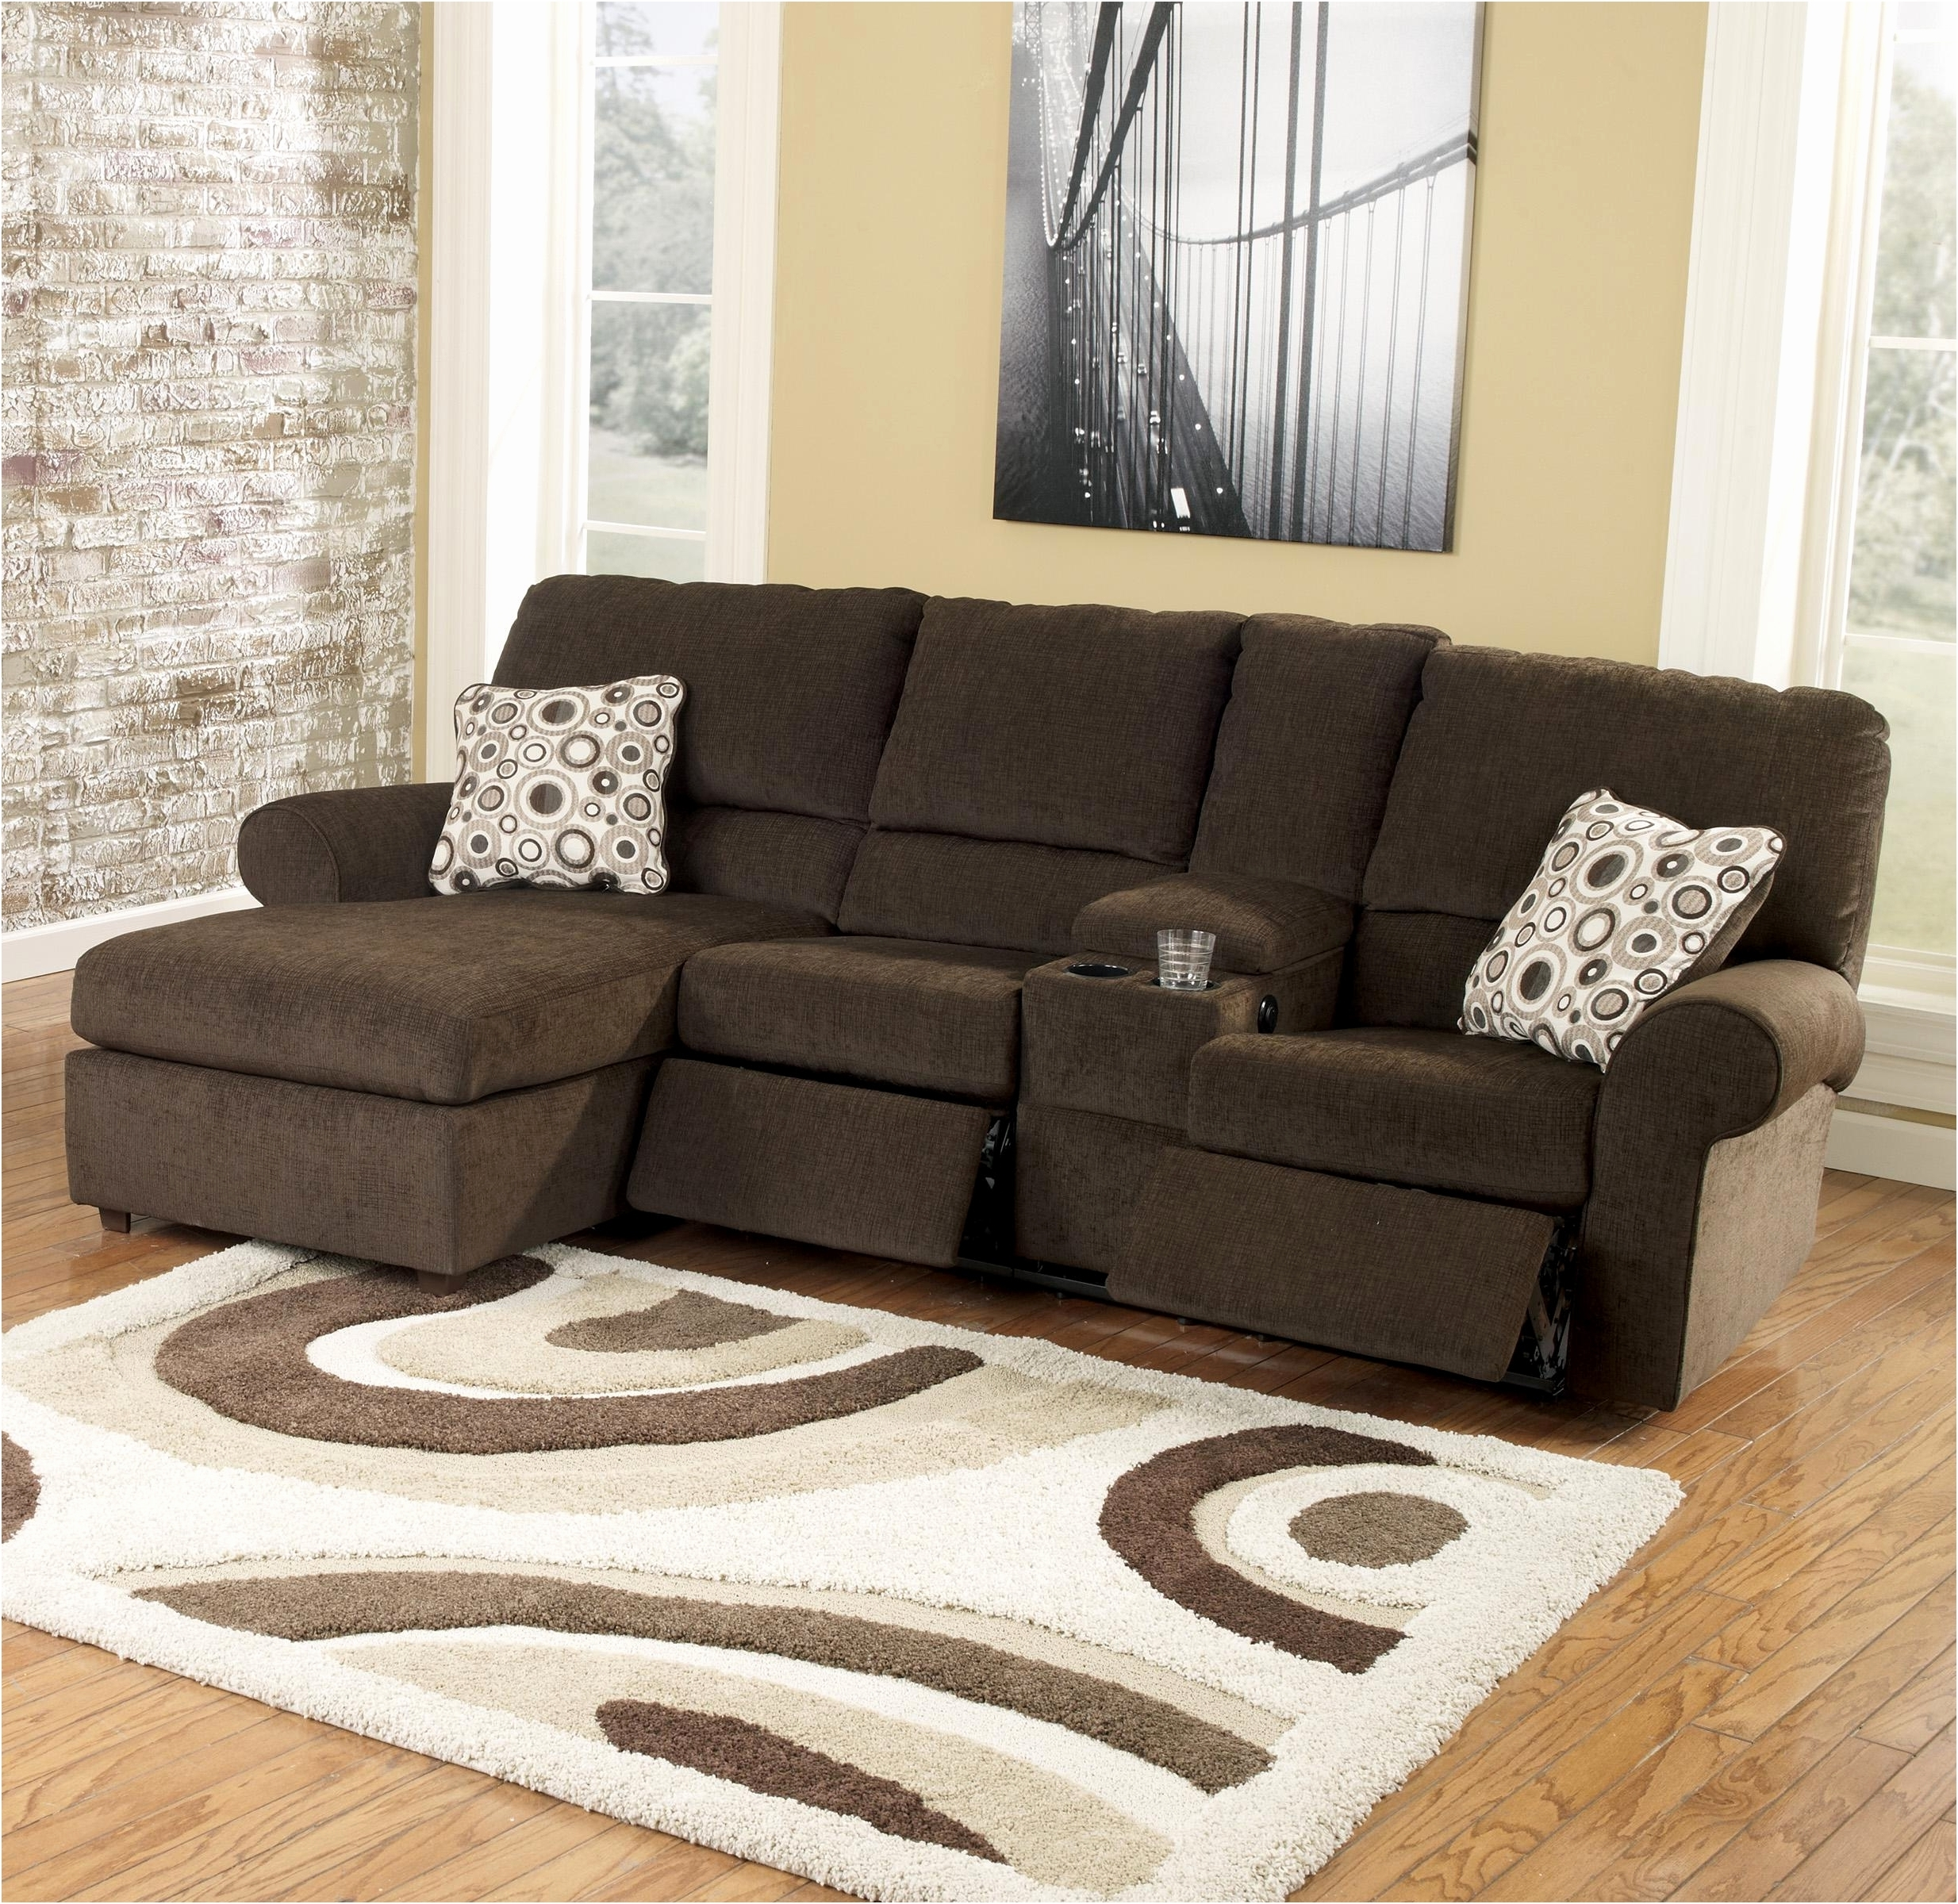 Favorite Sectional Sofas In Hyderabad With Sofa : Dorchester Sofa Set Leather Recliners Uk Sofa Bed Recliners (View 2 of 20)